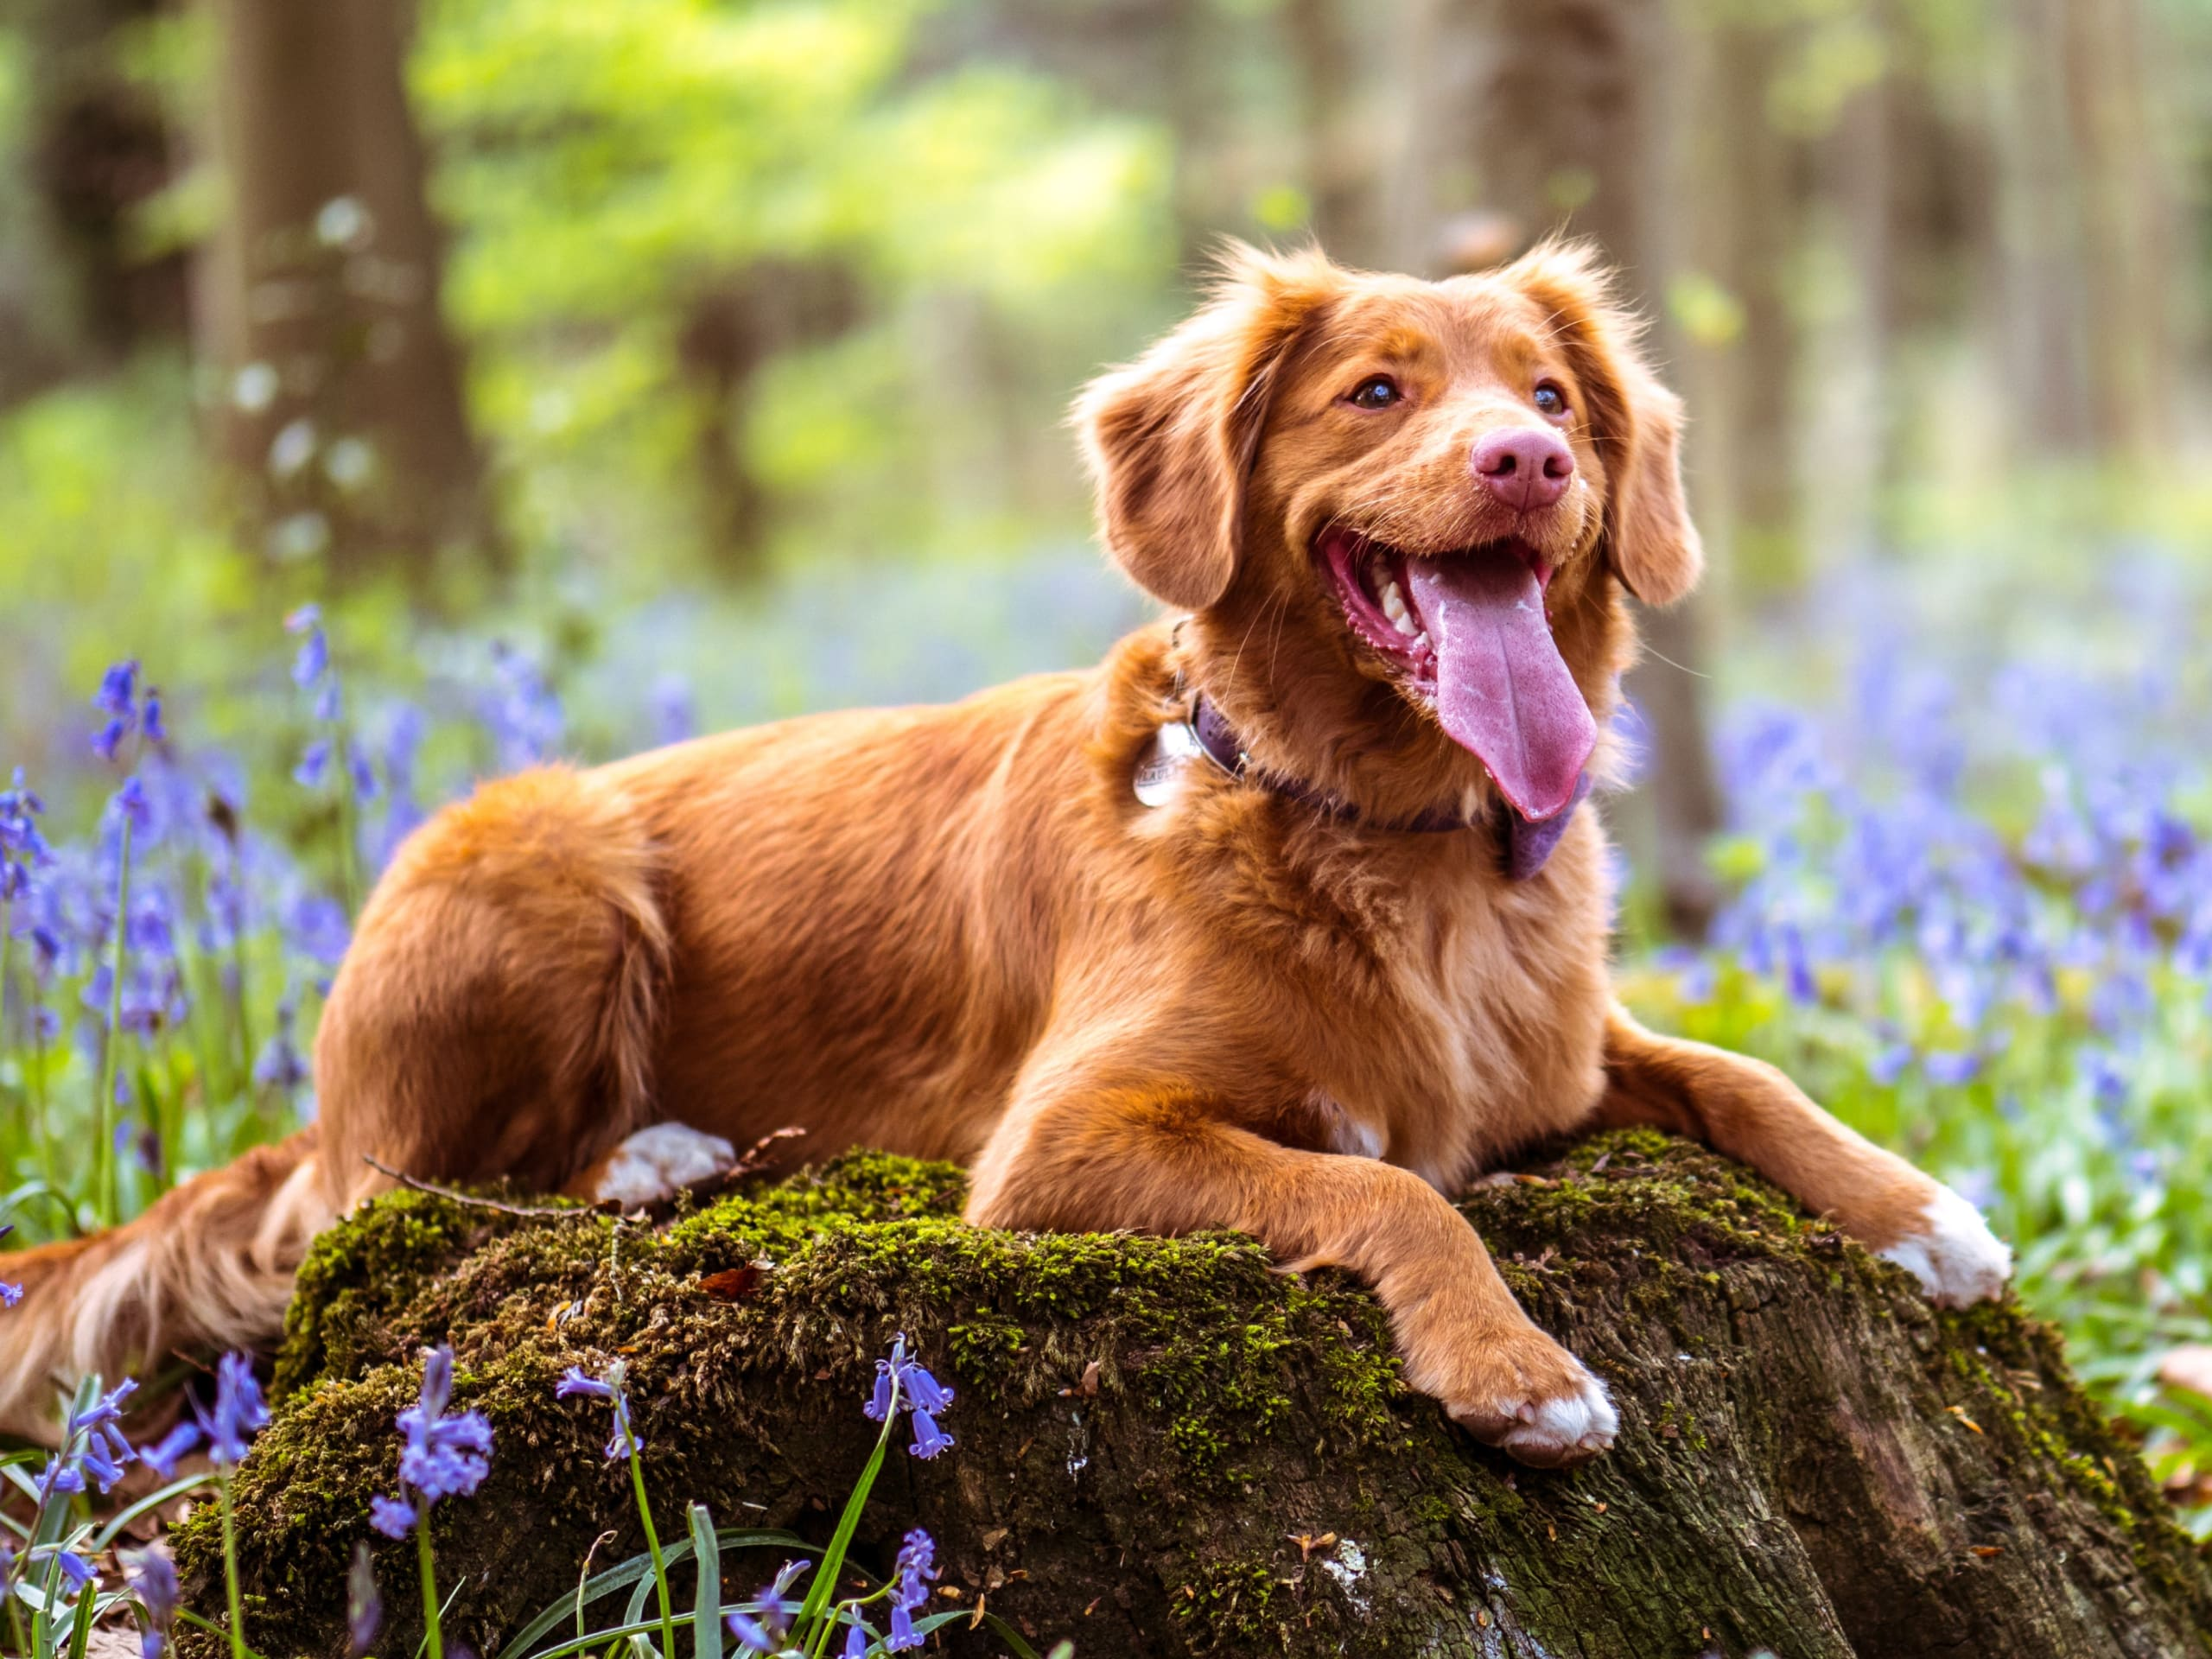 A happy dog laying on a moss-covered stump in the woods.